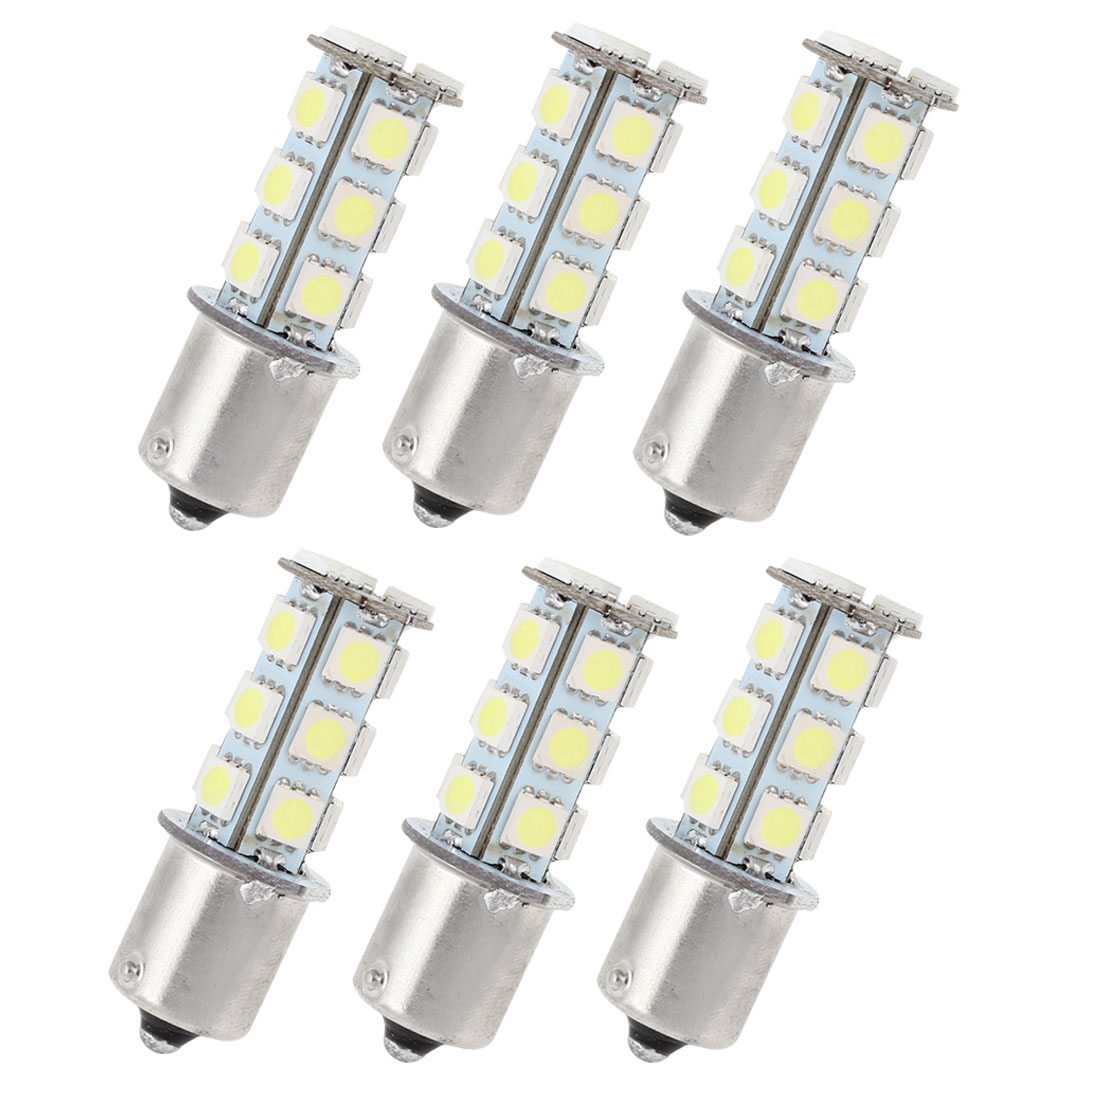 6 Pcs White 18 LED 1156 BA15S 5050 SMD Car Indicator Backup Tail Turn Light 1073 50081459